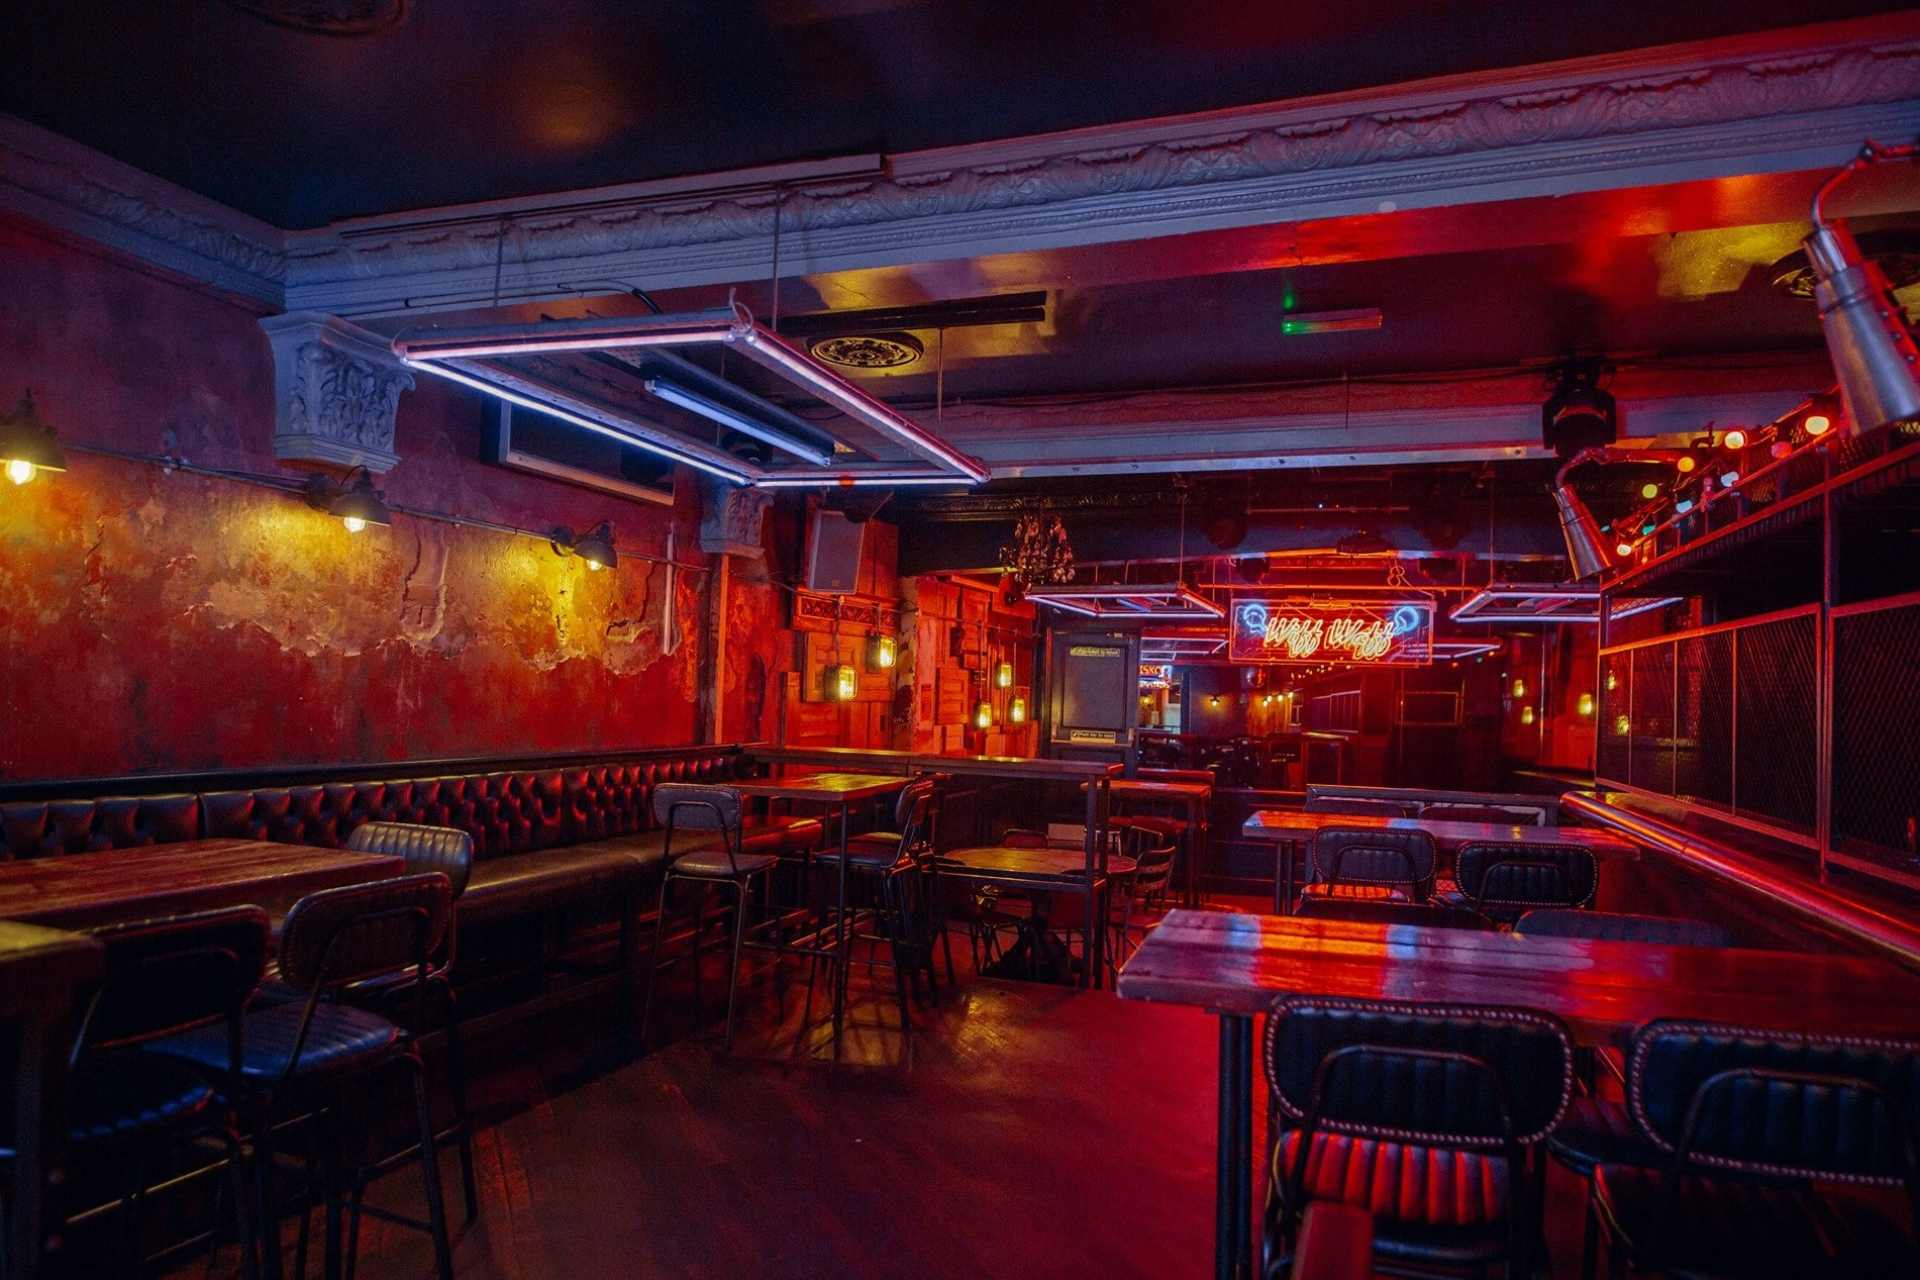 industrial-das-kino-bar-and-restaurant-lit-up-in-neon-lights